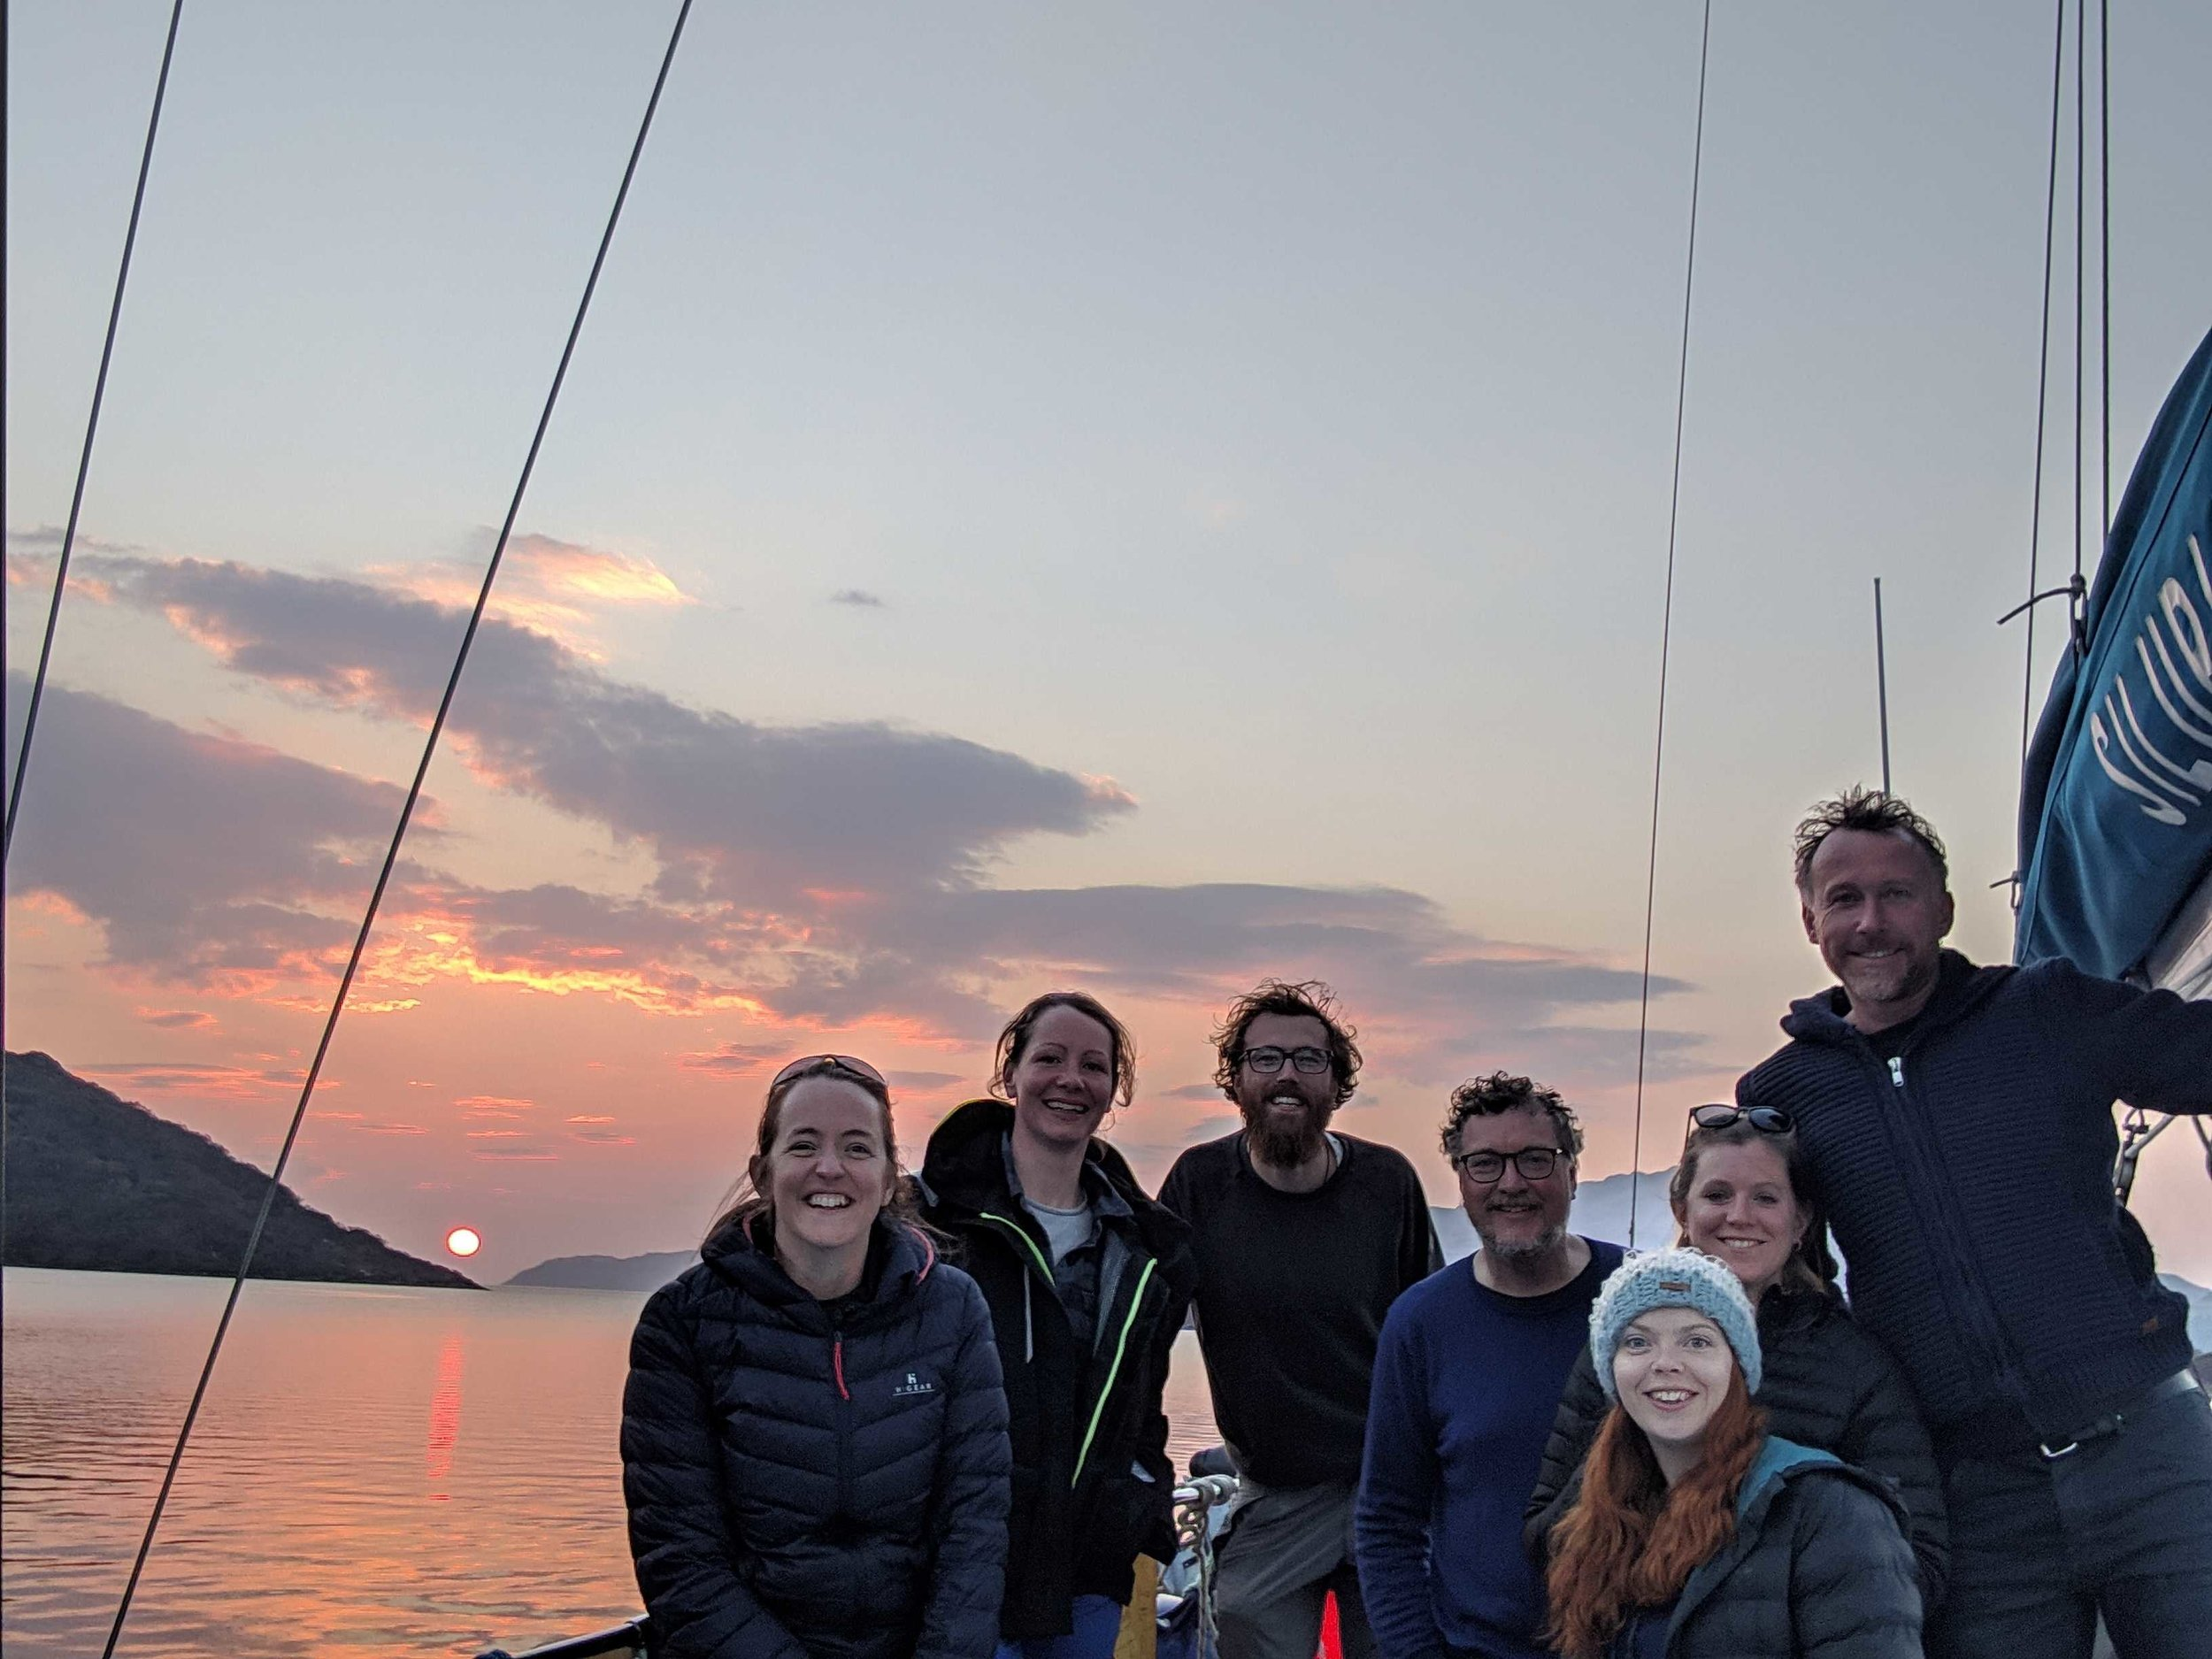 Our 2019 crew anchored in Loch Sunart at sunset during their team training last month